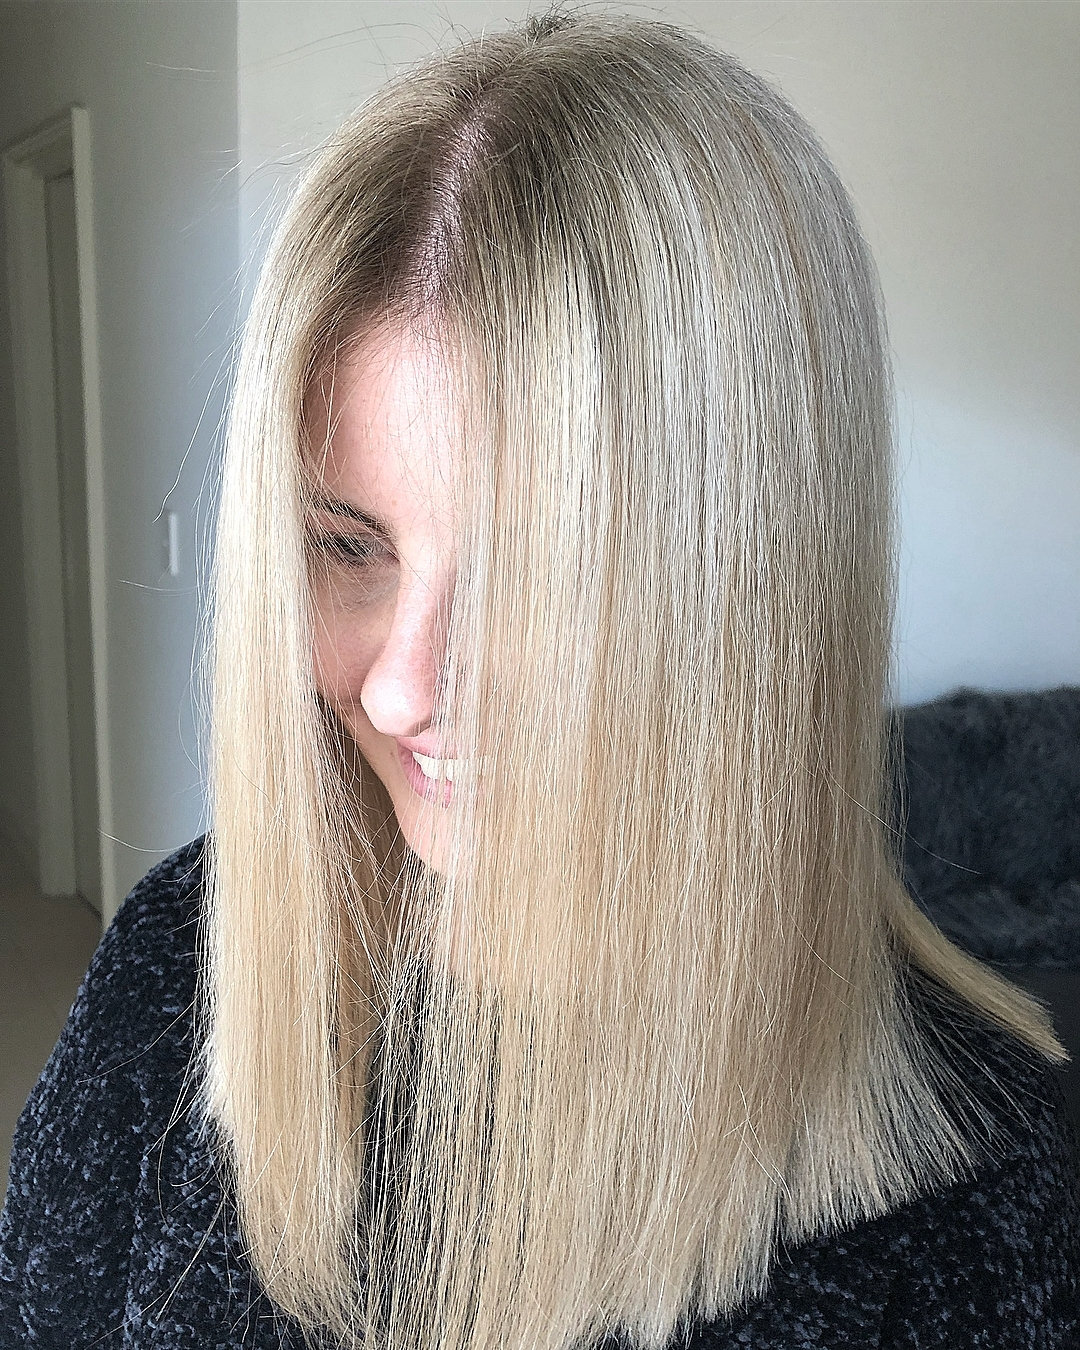 Rootfade – Hash Tags – Deskgram Pertaining To Well Known Creamy Blonde Fade Hairstyles (Gallery 15 of 20)